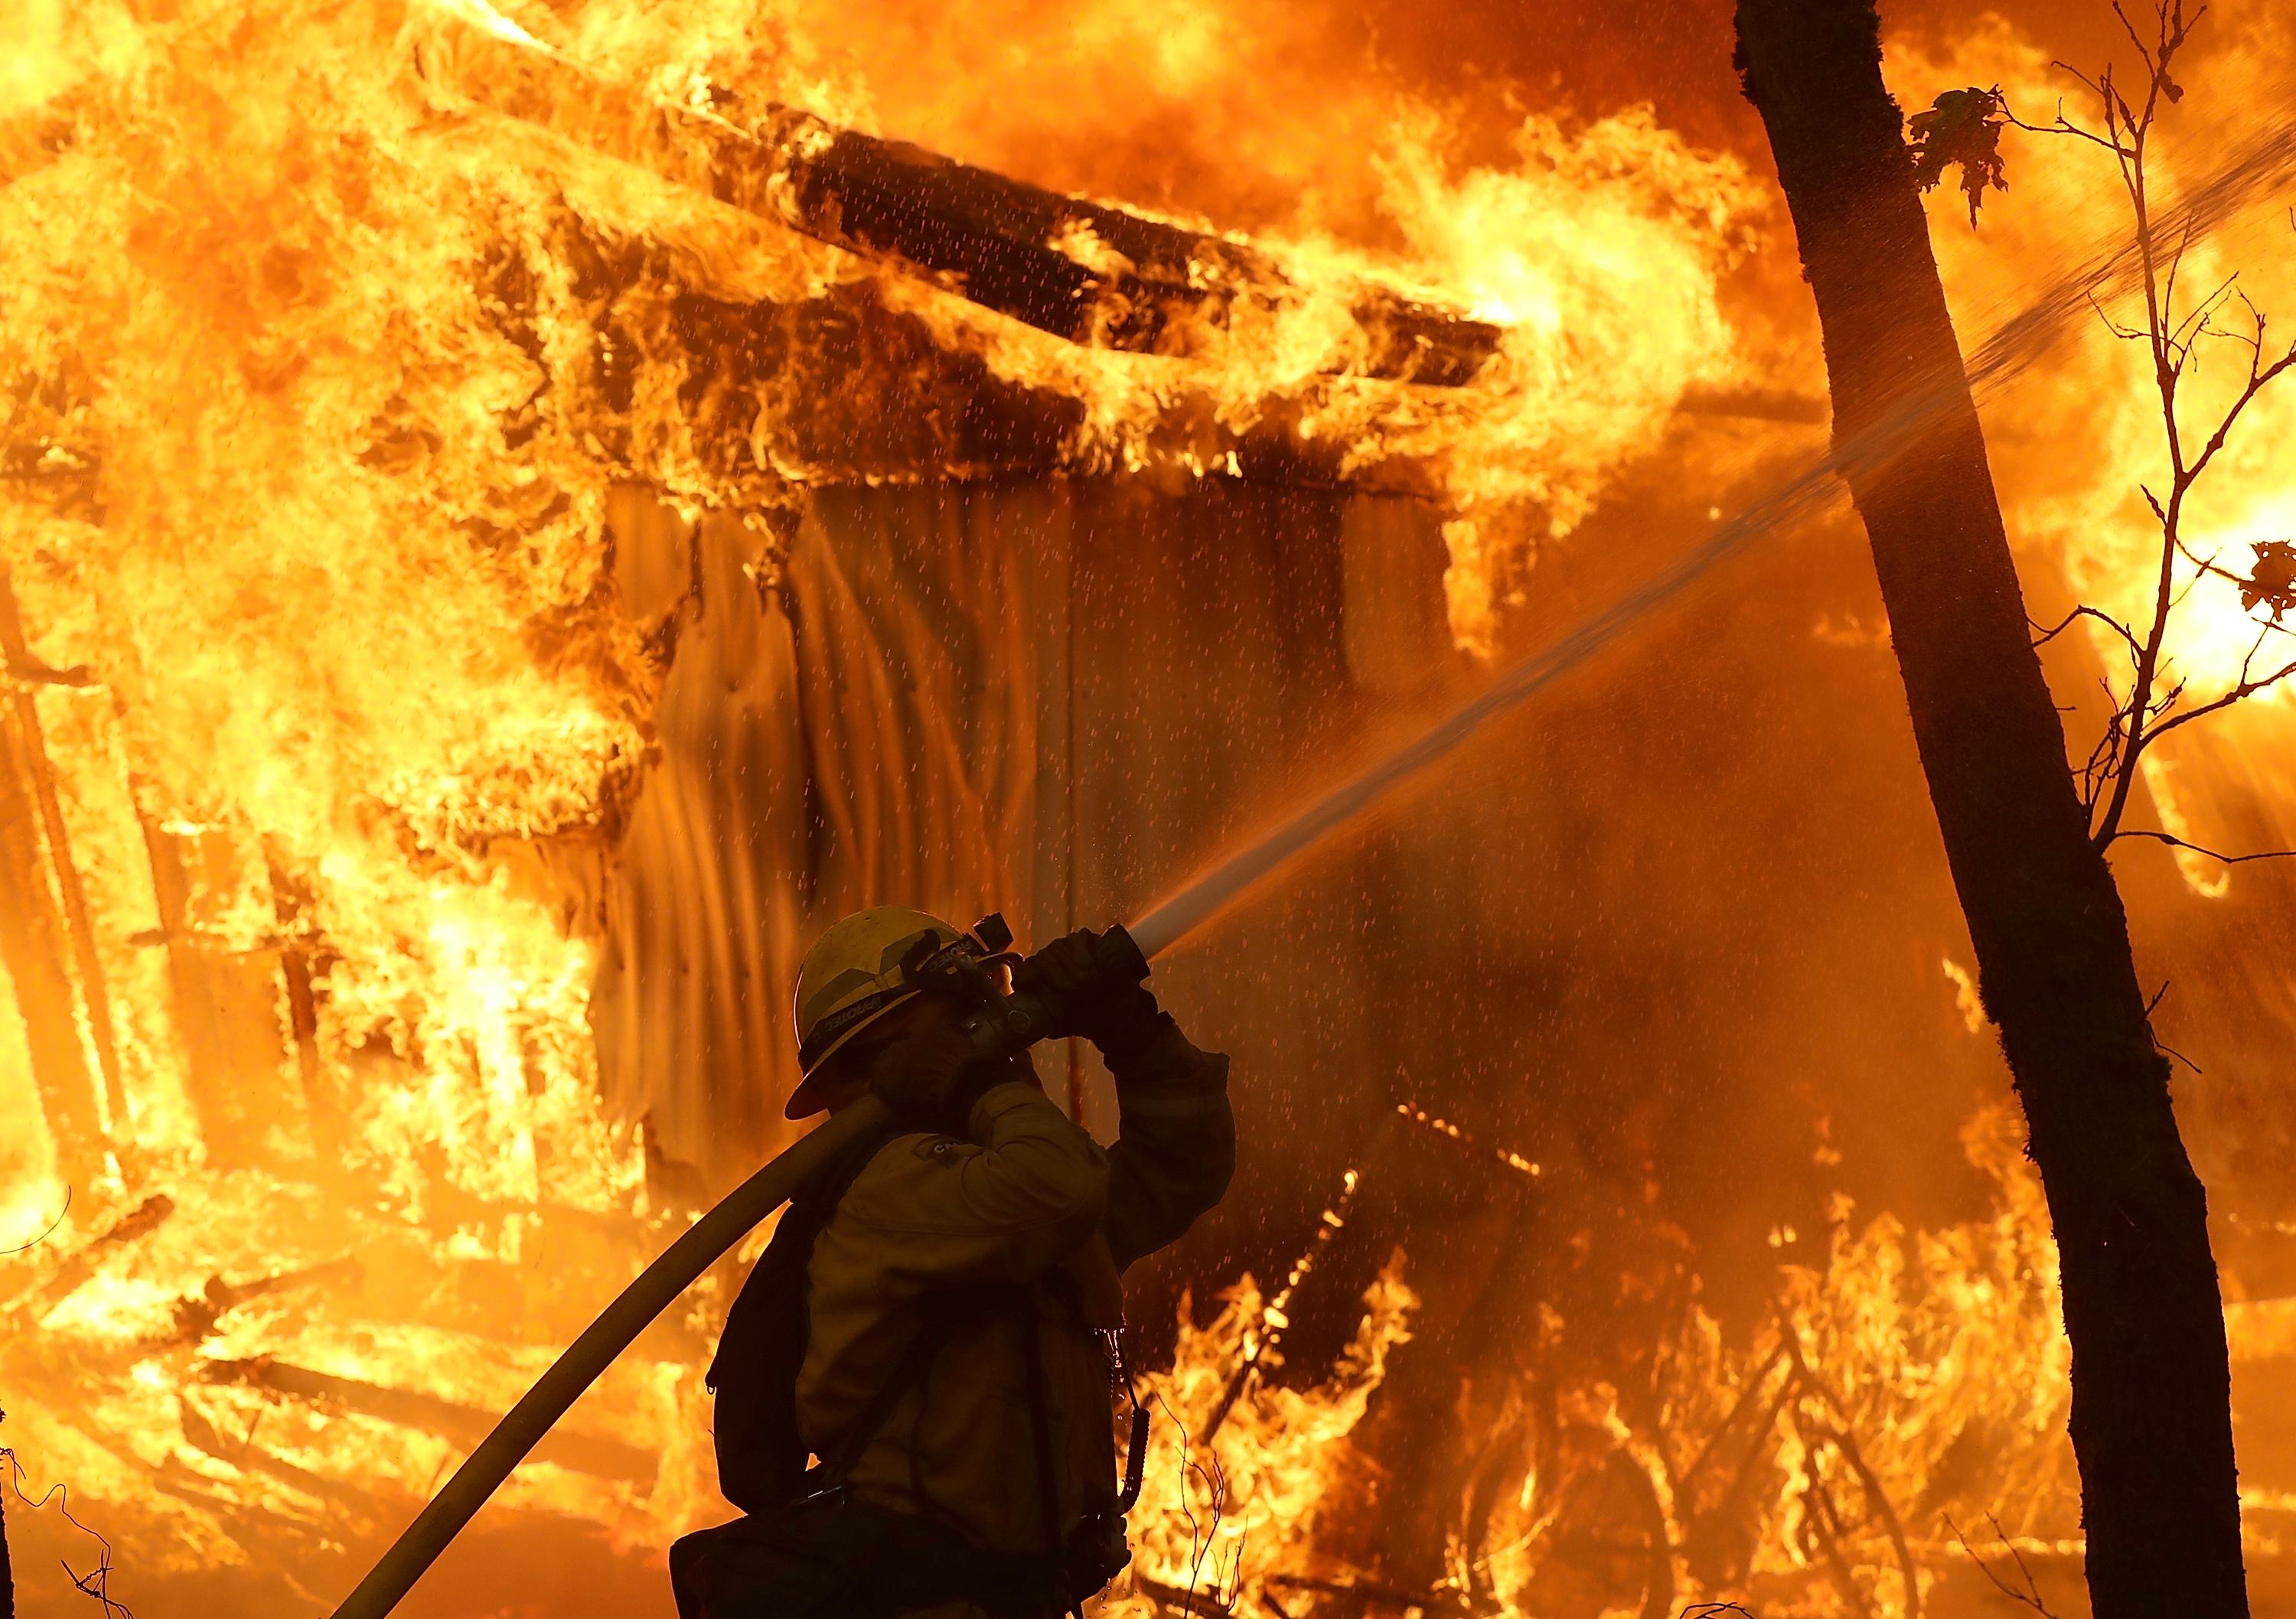 A firefighter uses a hose in the midst of a blaze.